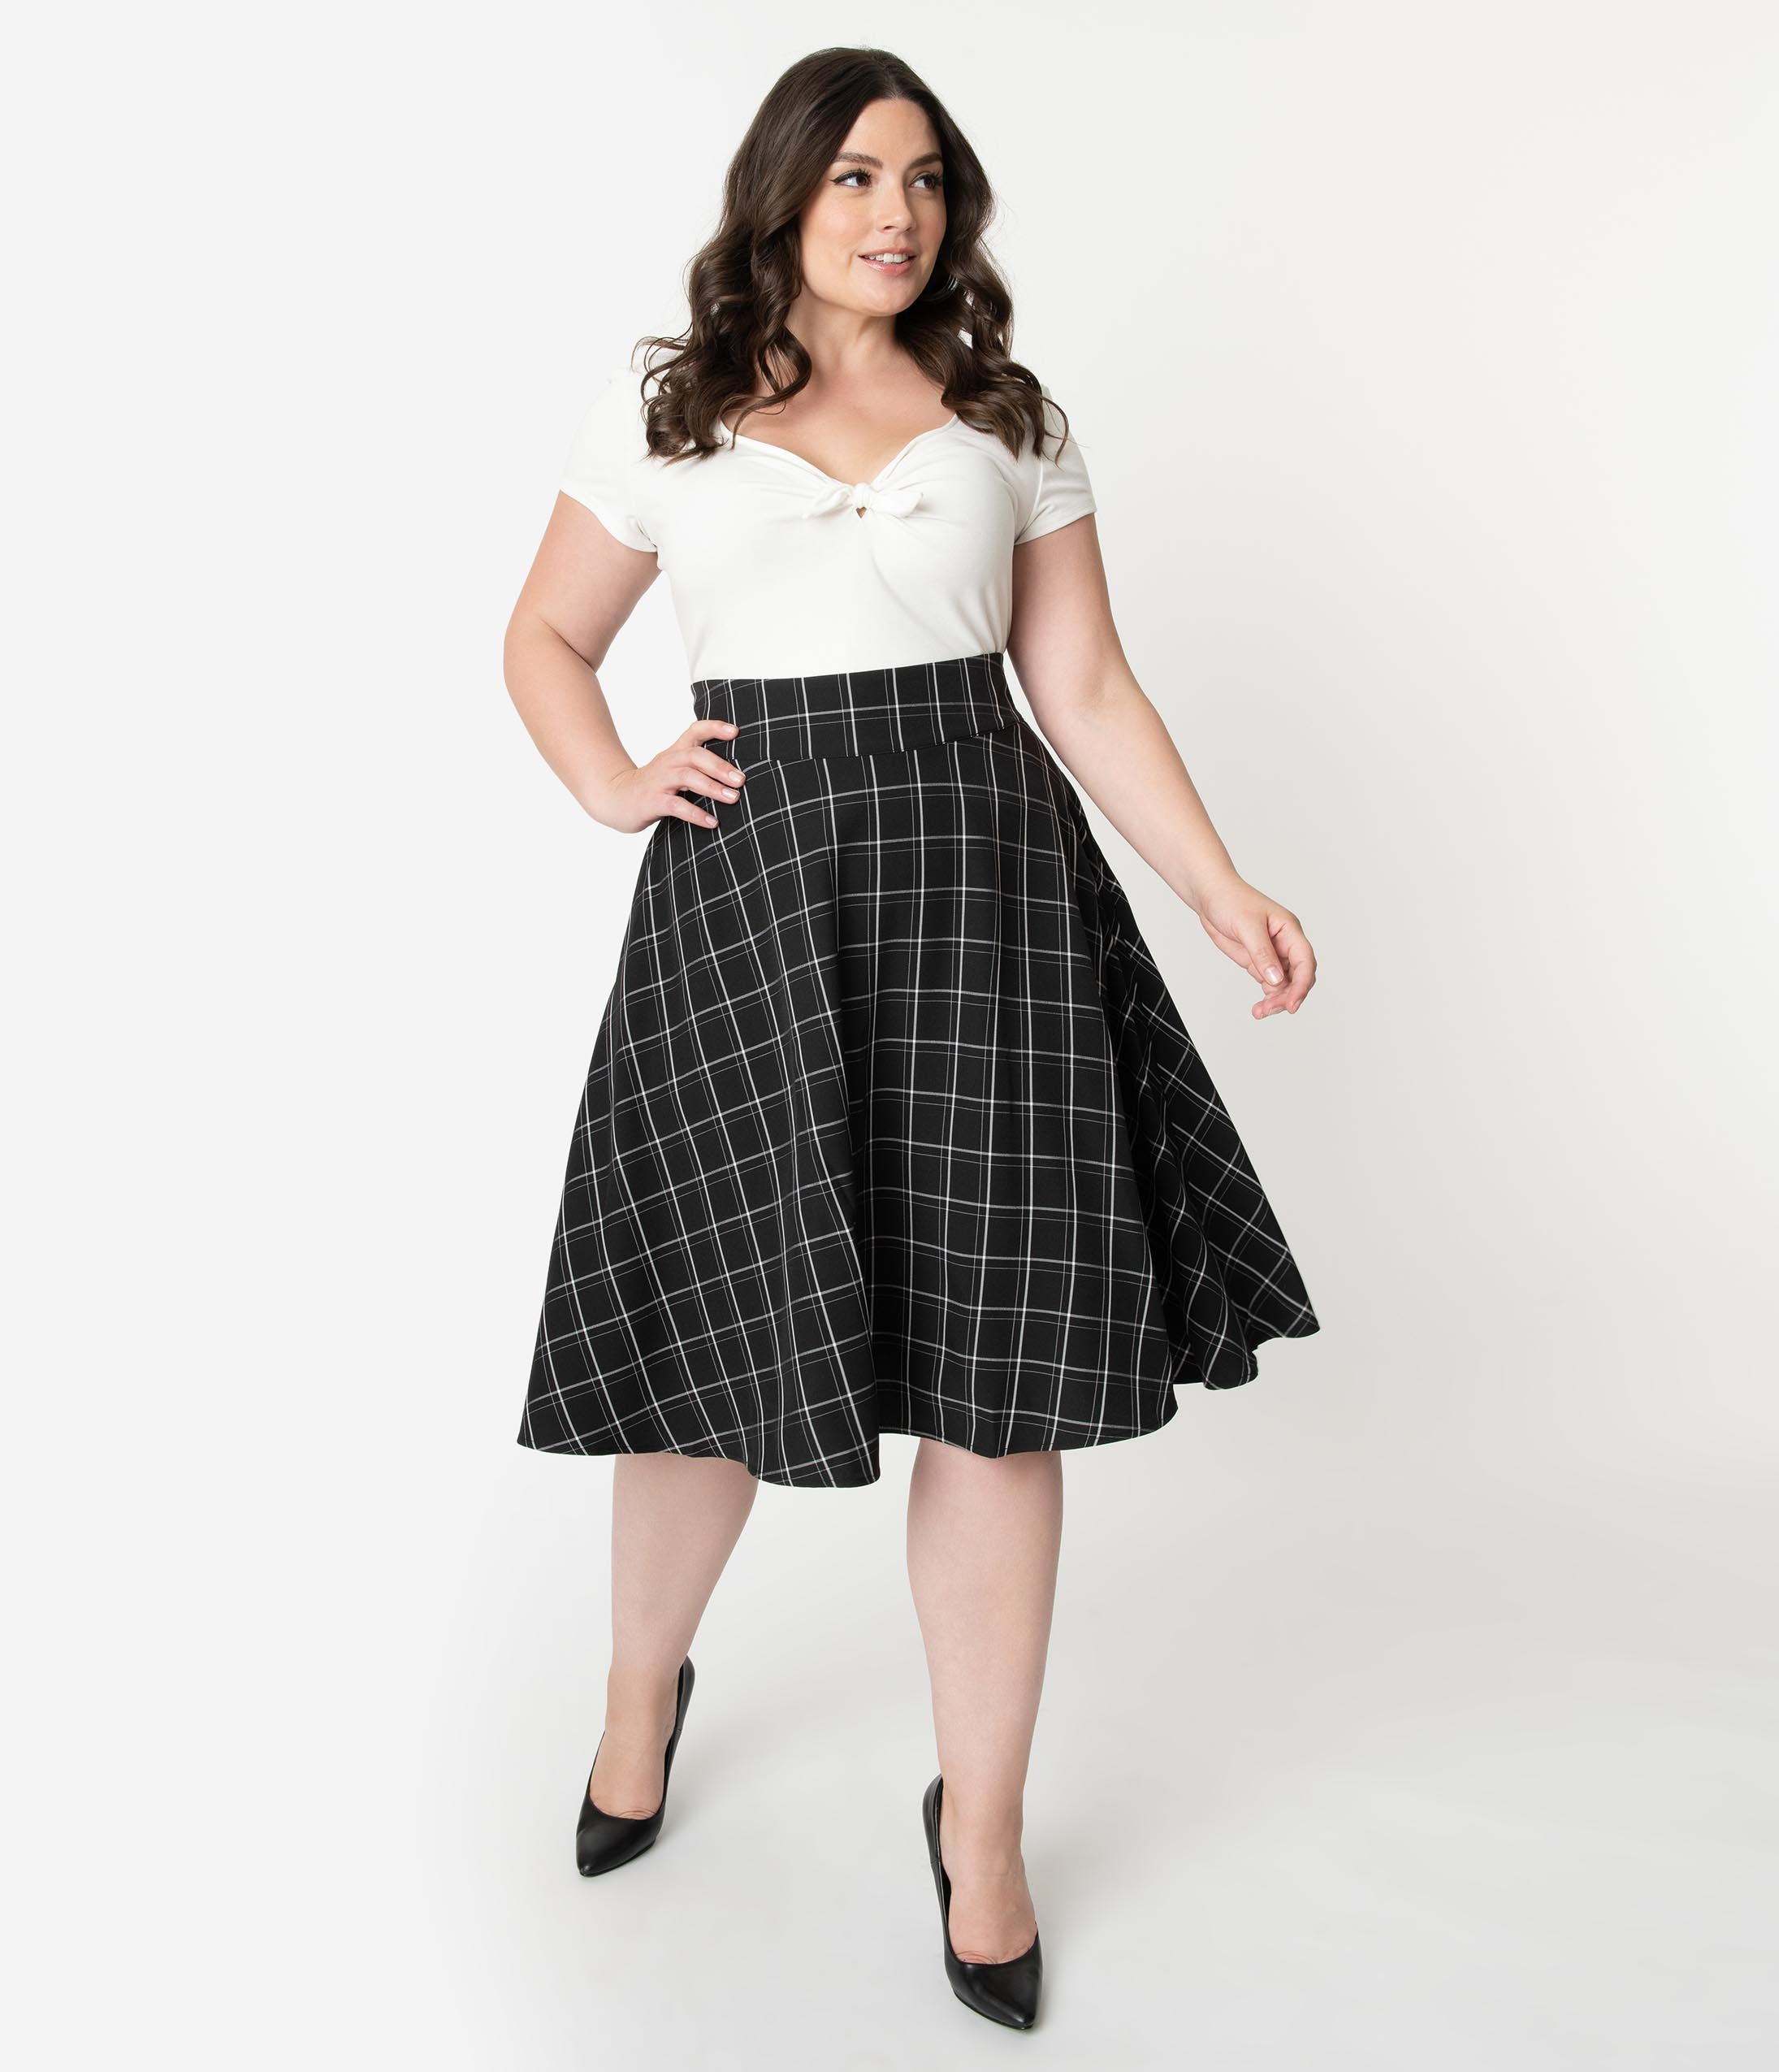 1940s Style Skirts- Vintage High Waisted Skirts Unique Vintage Plus Size Retro Style Black  White Windowpane High Waist Vivien Swing Skirt $58.00 AT vintagedancer.com